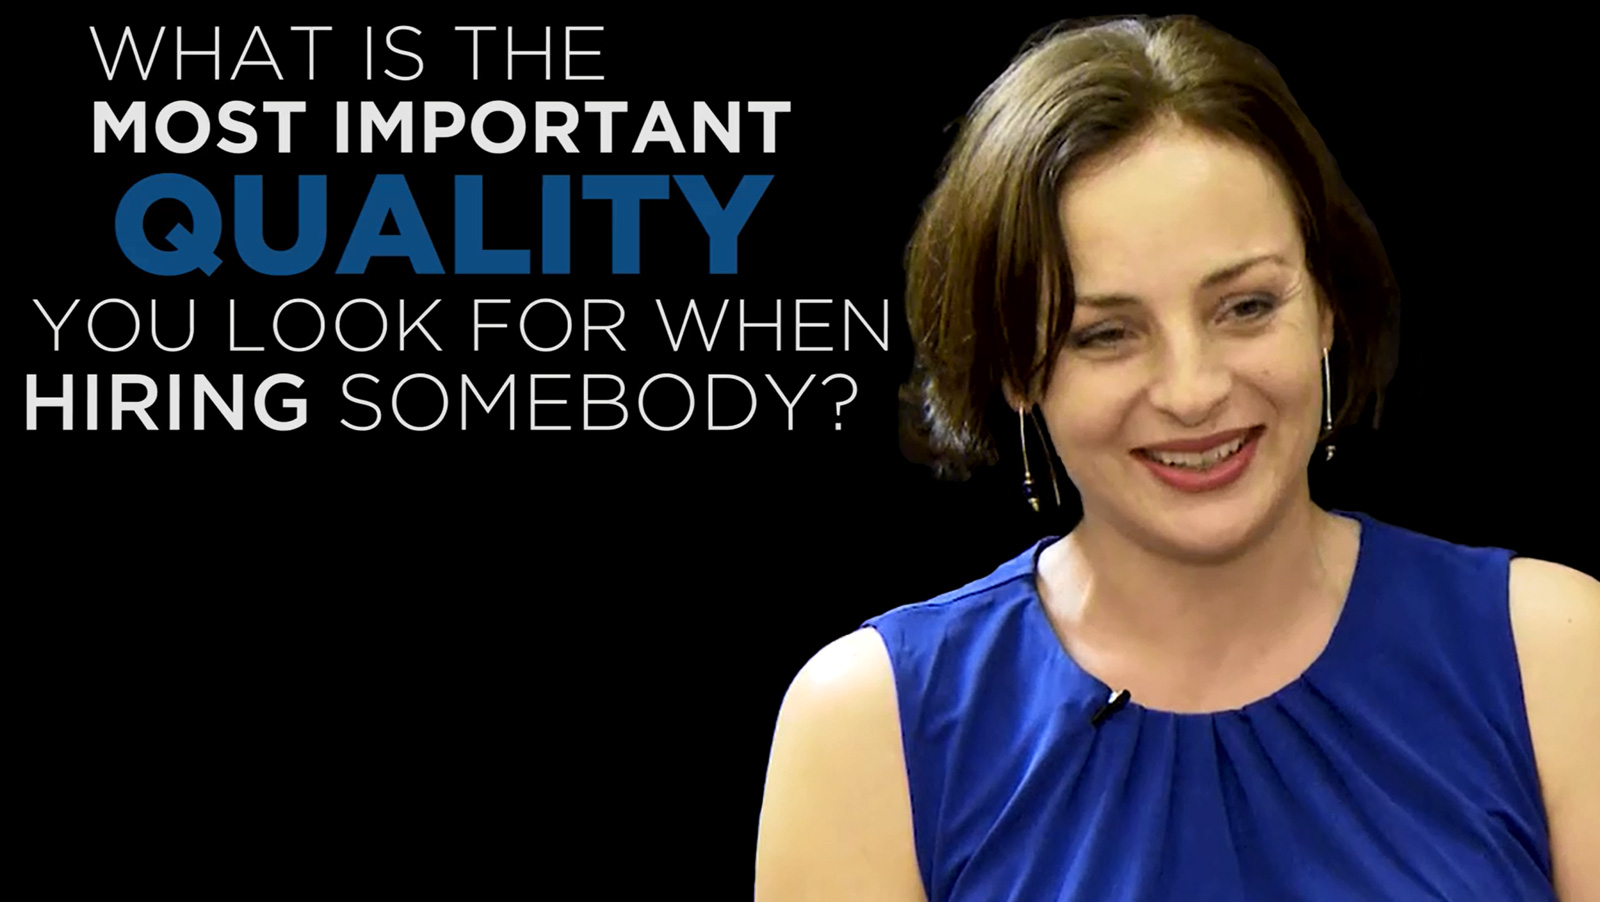 Shared Experience – What is the most important quality you look for when hiring somebody?